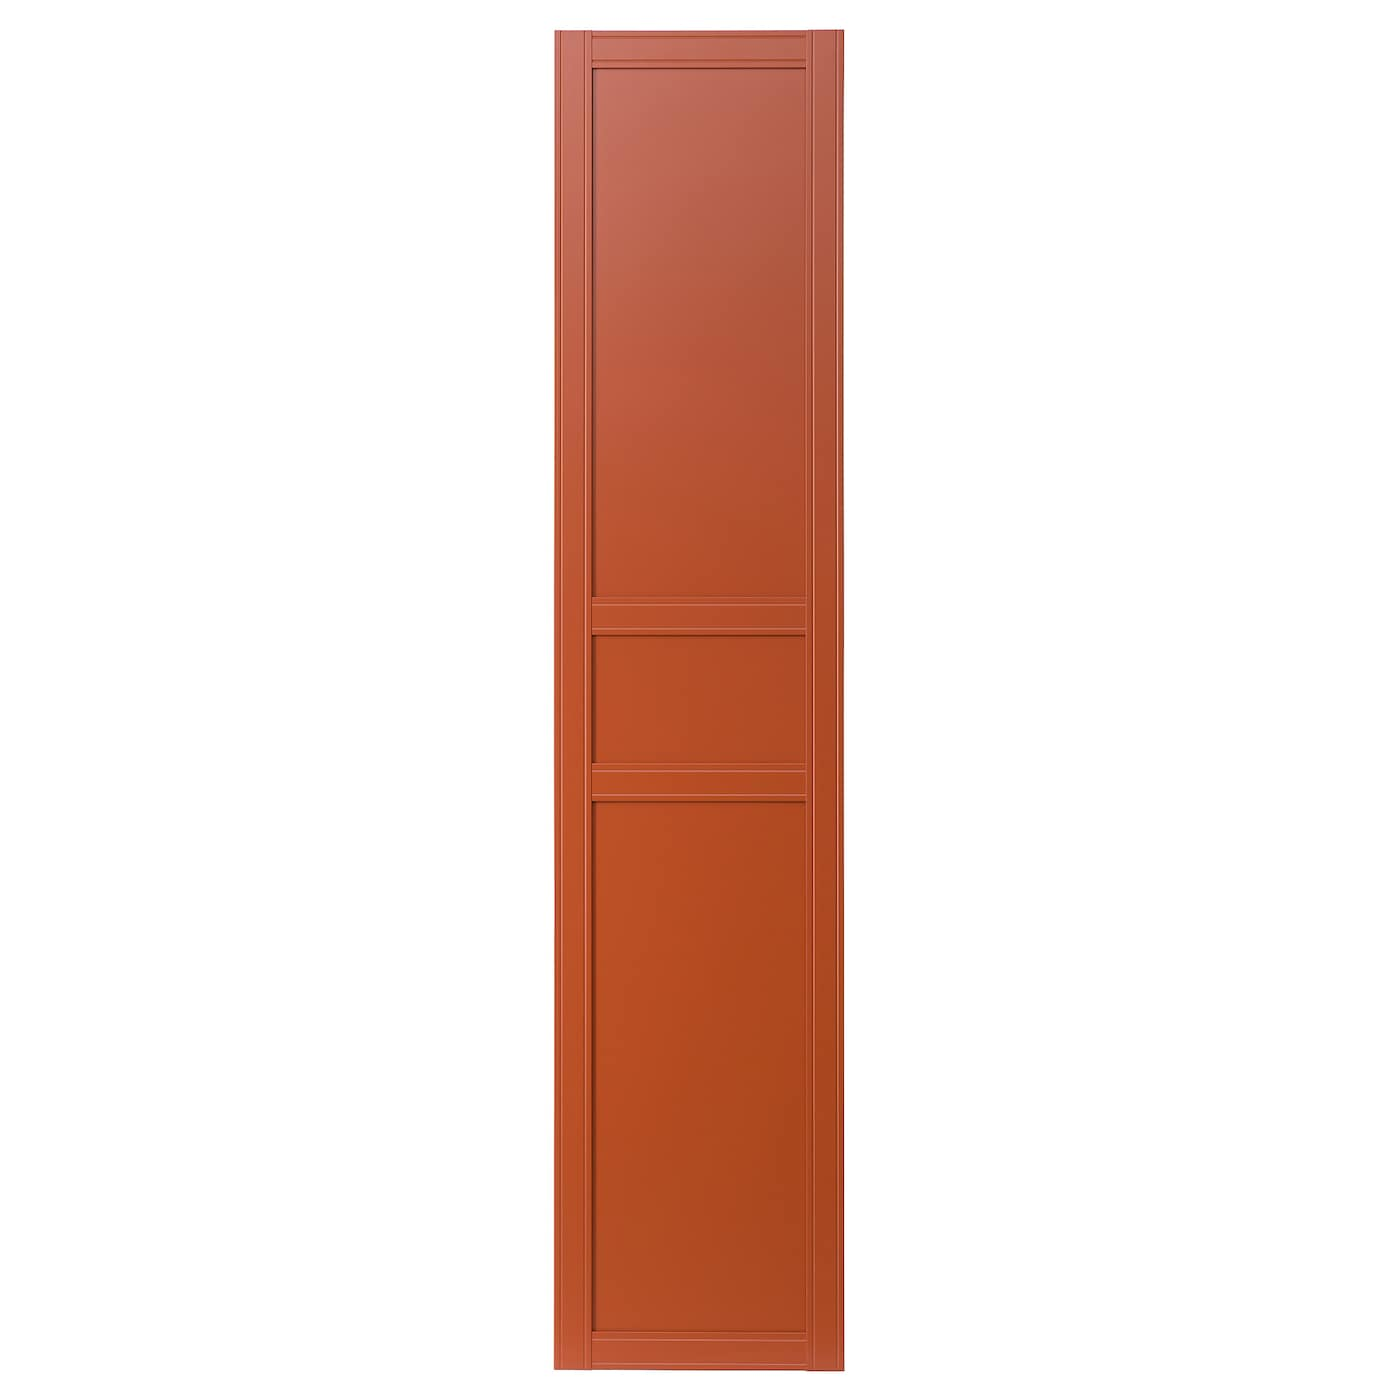 IKEA FLISBERGET door with hinges 10 year guarantee. Read about the terms in the guarantee brochure.